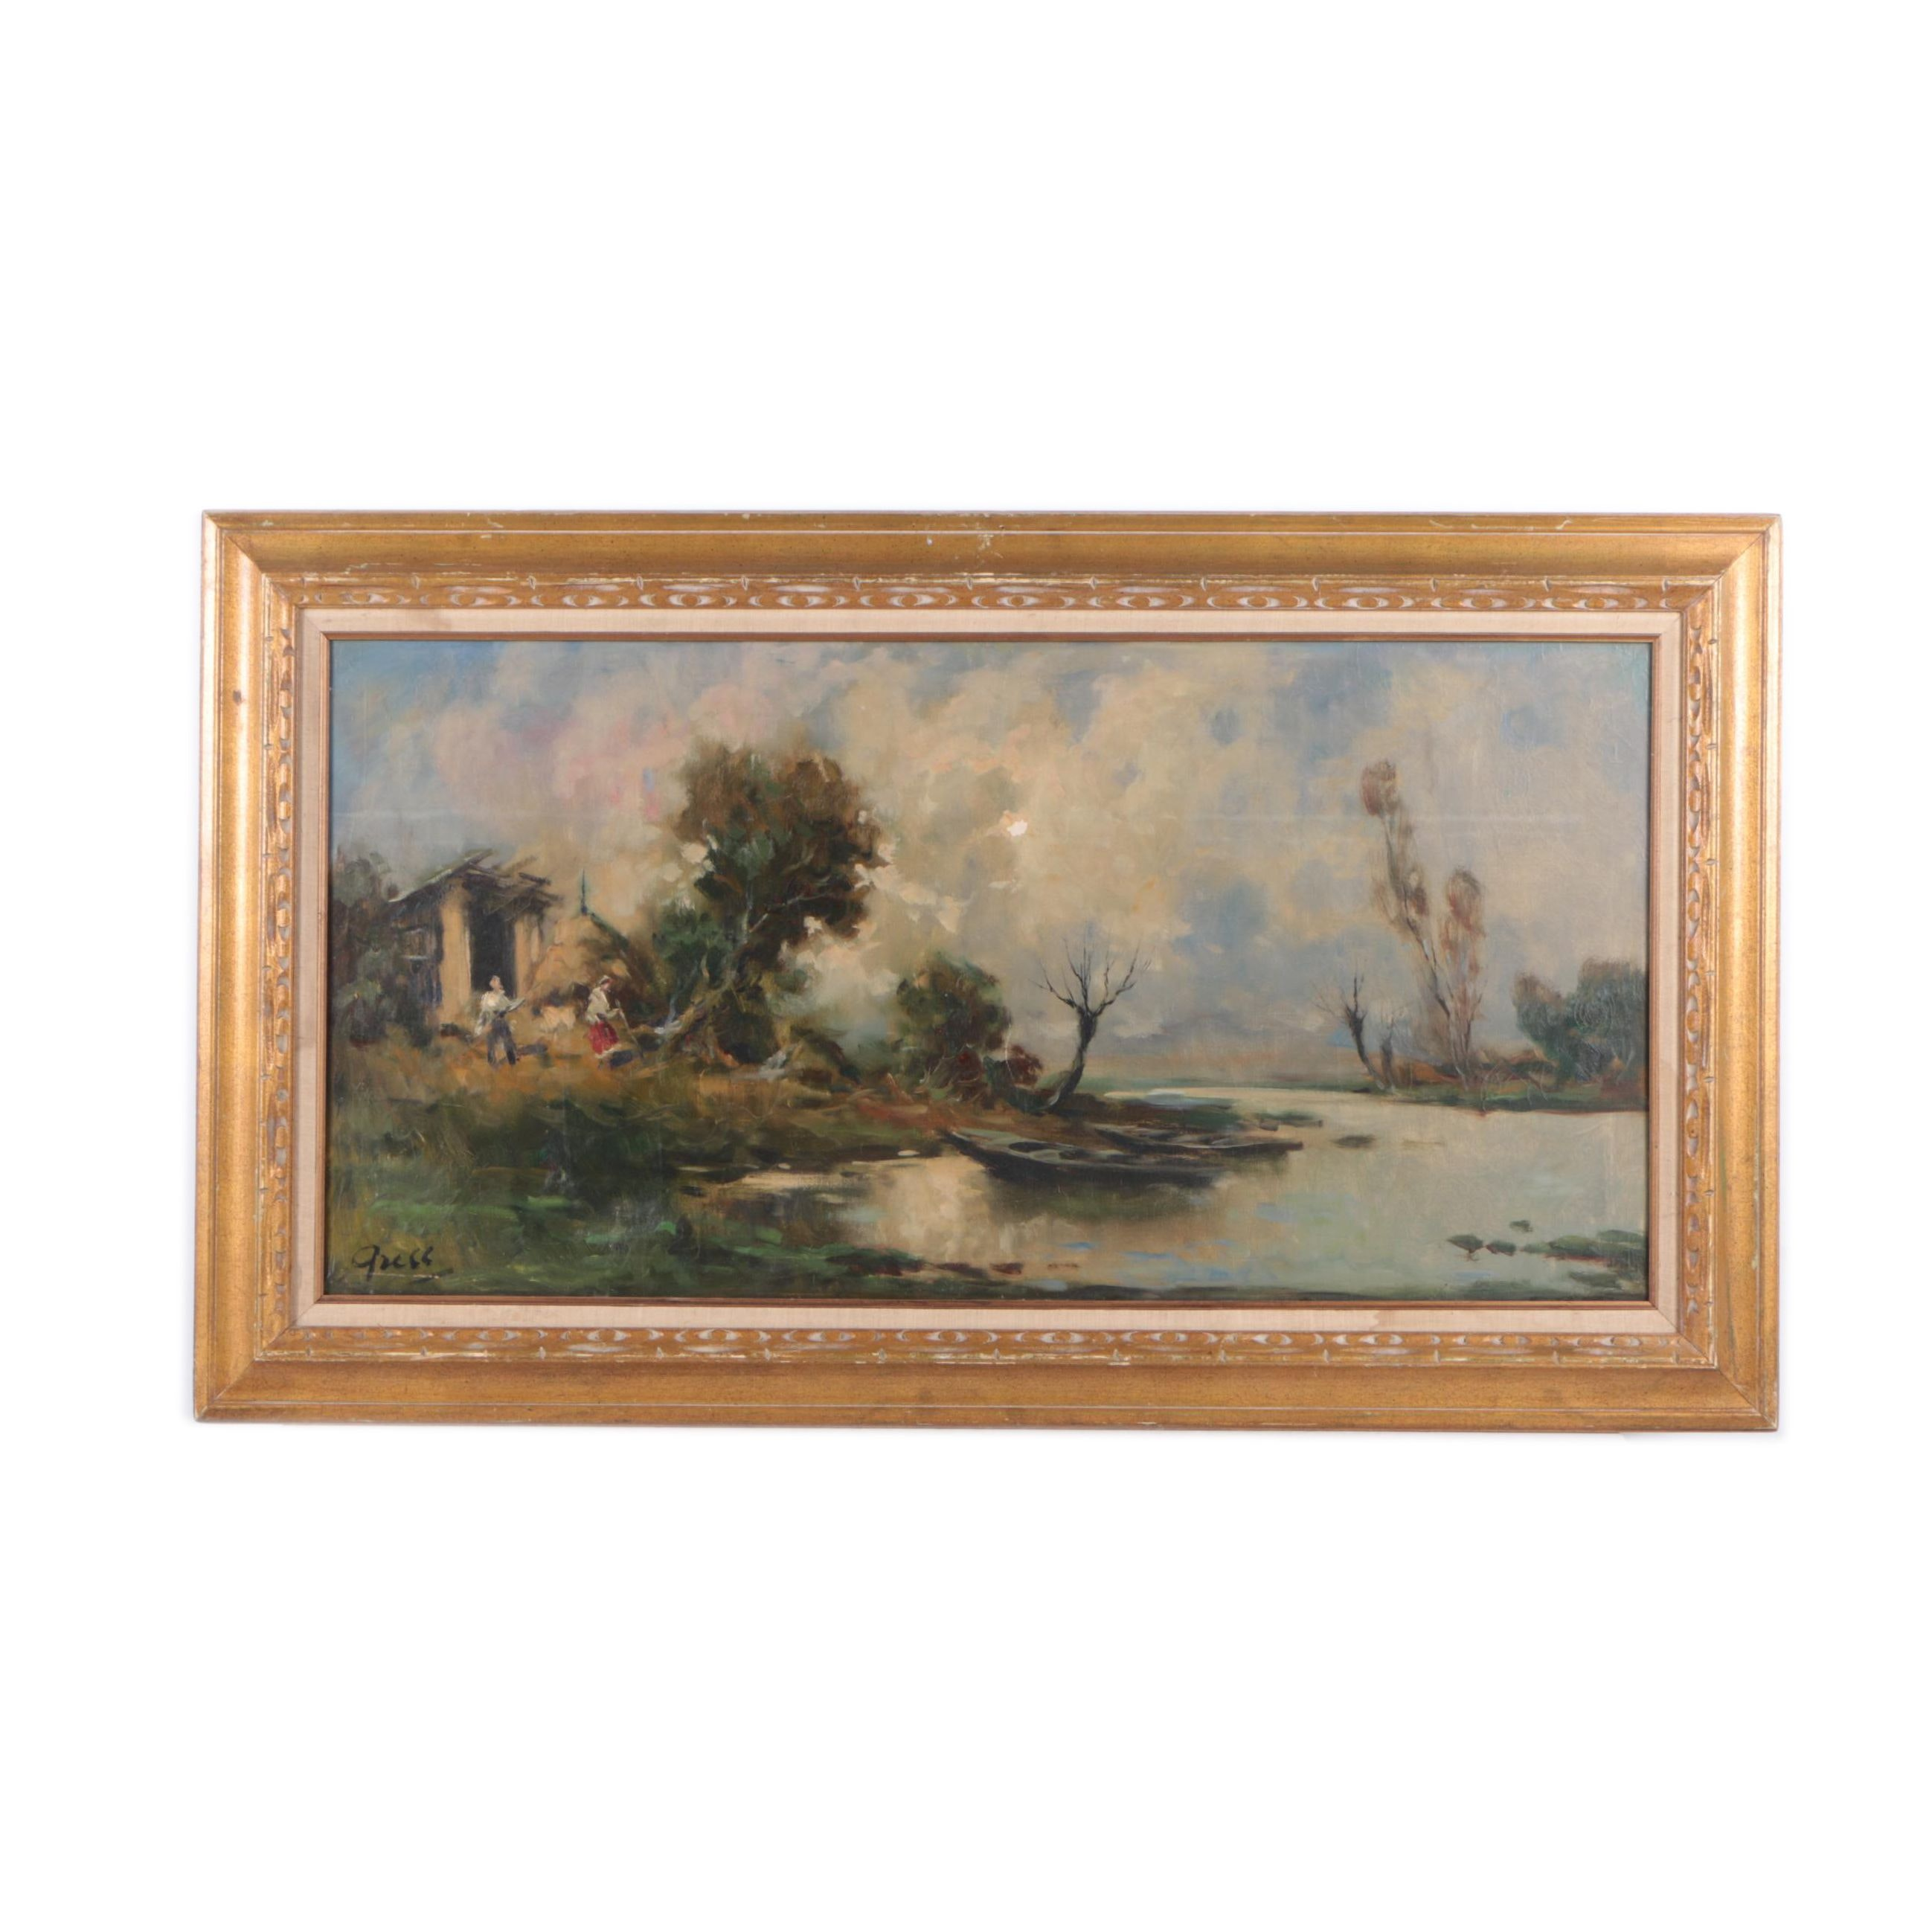 Oil Painting on Canvas of a Figurative Landscape